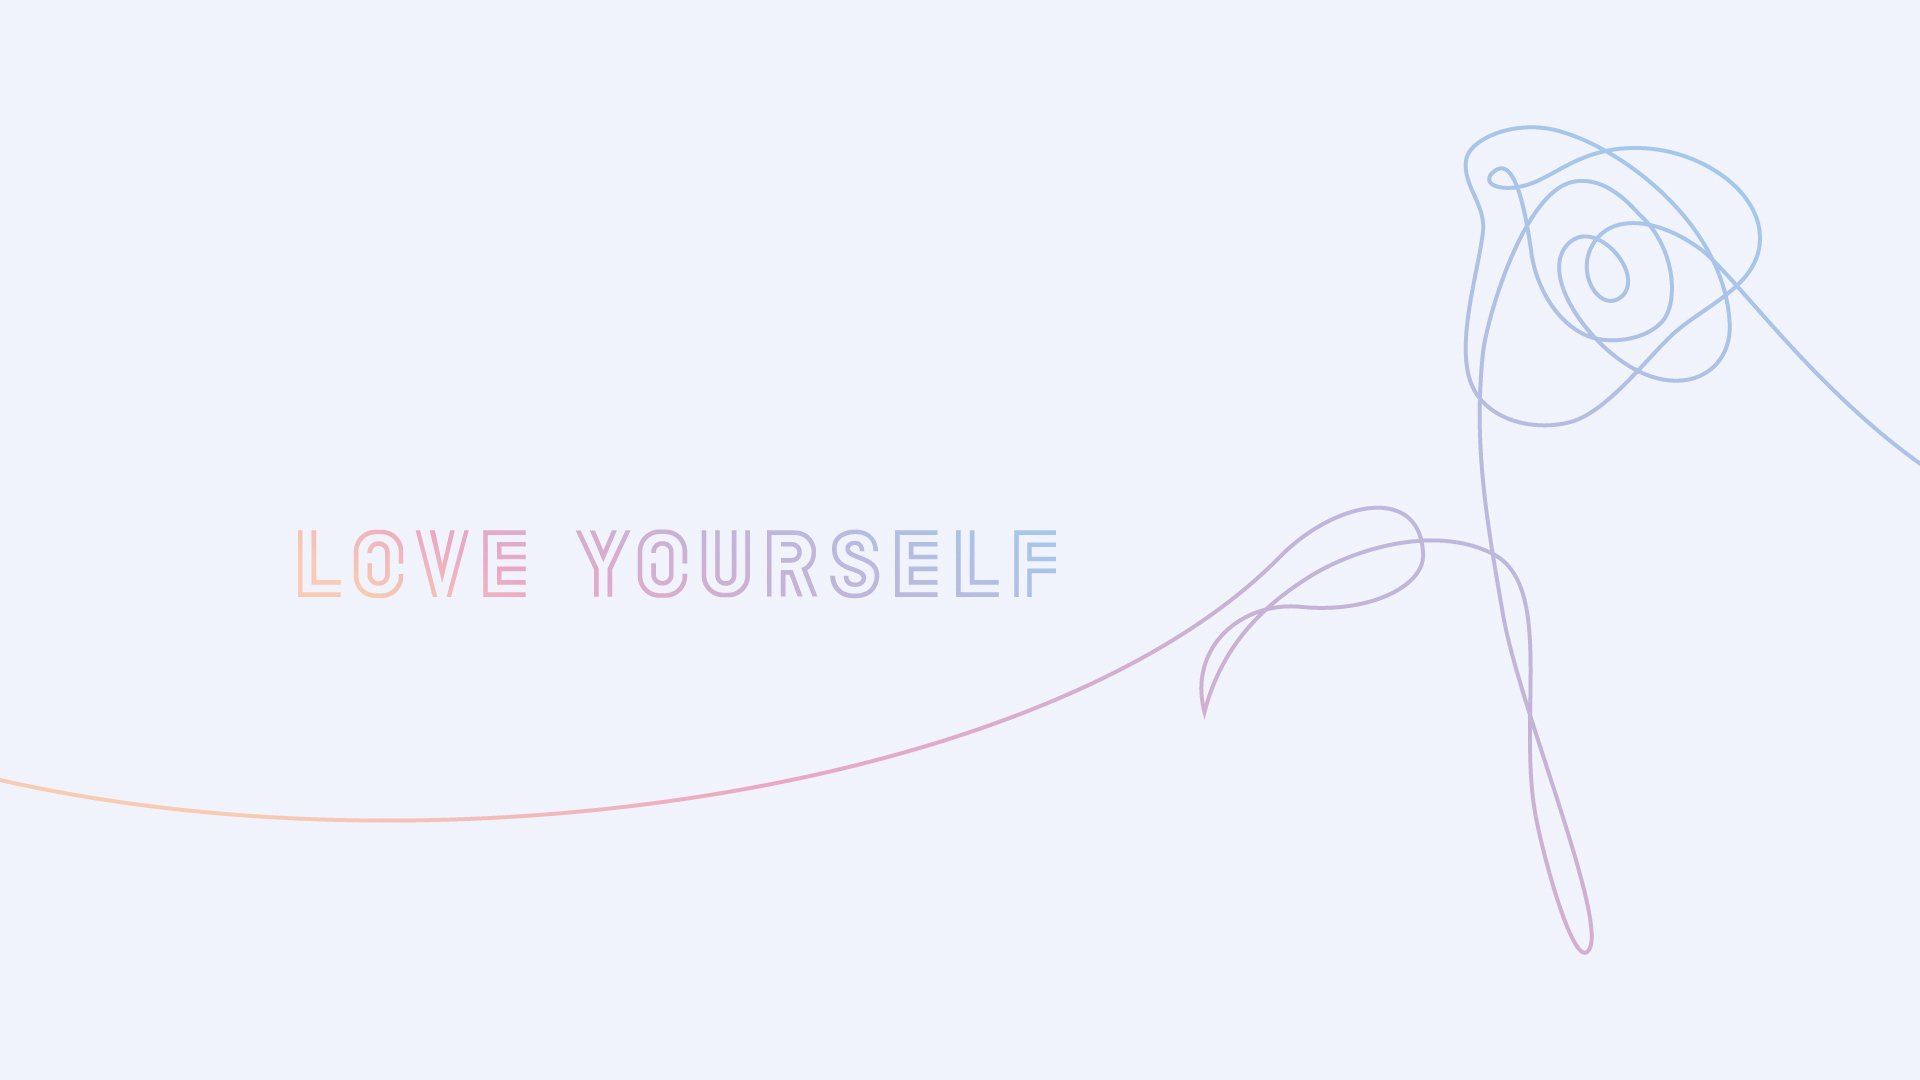 Bts Kookie Monster On Twitter Love Yourself Desktop Wallpapers